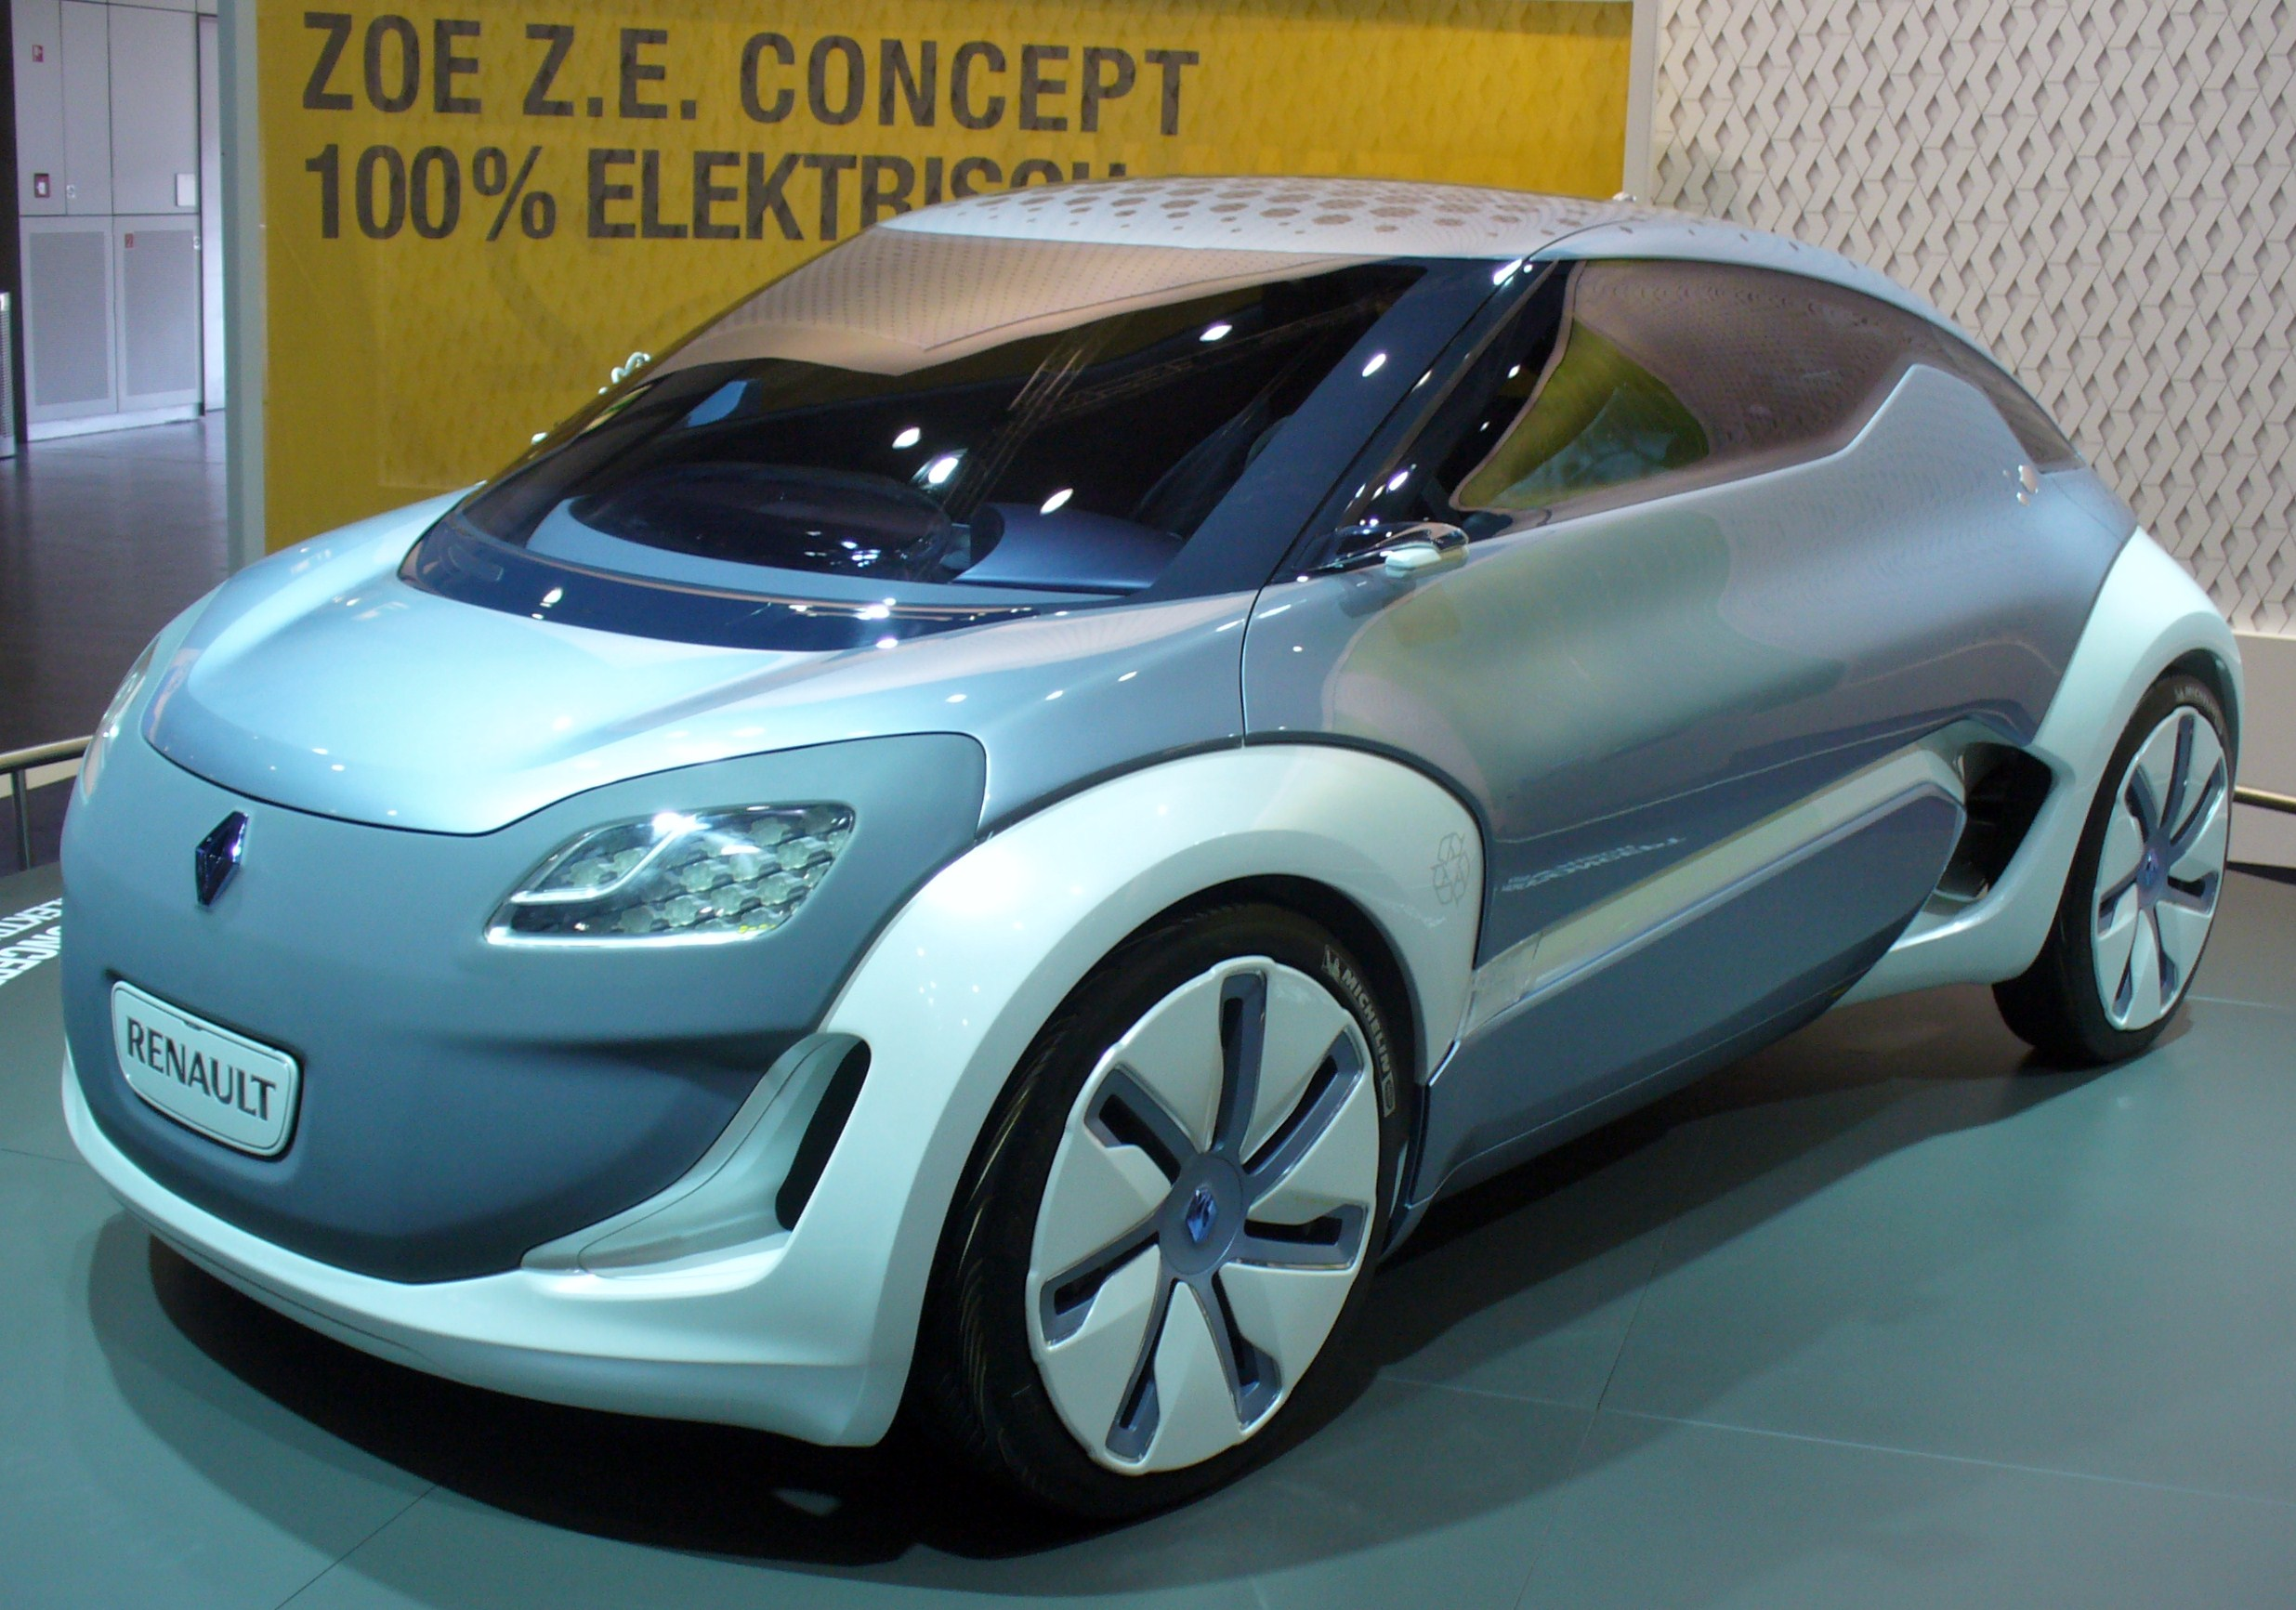 Renault Zoe ZE Concept High Resolution Free Download Image Of